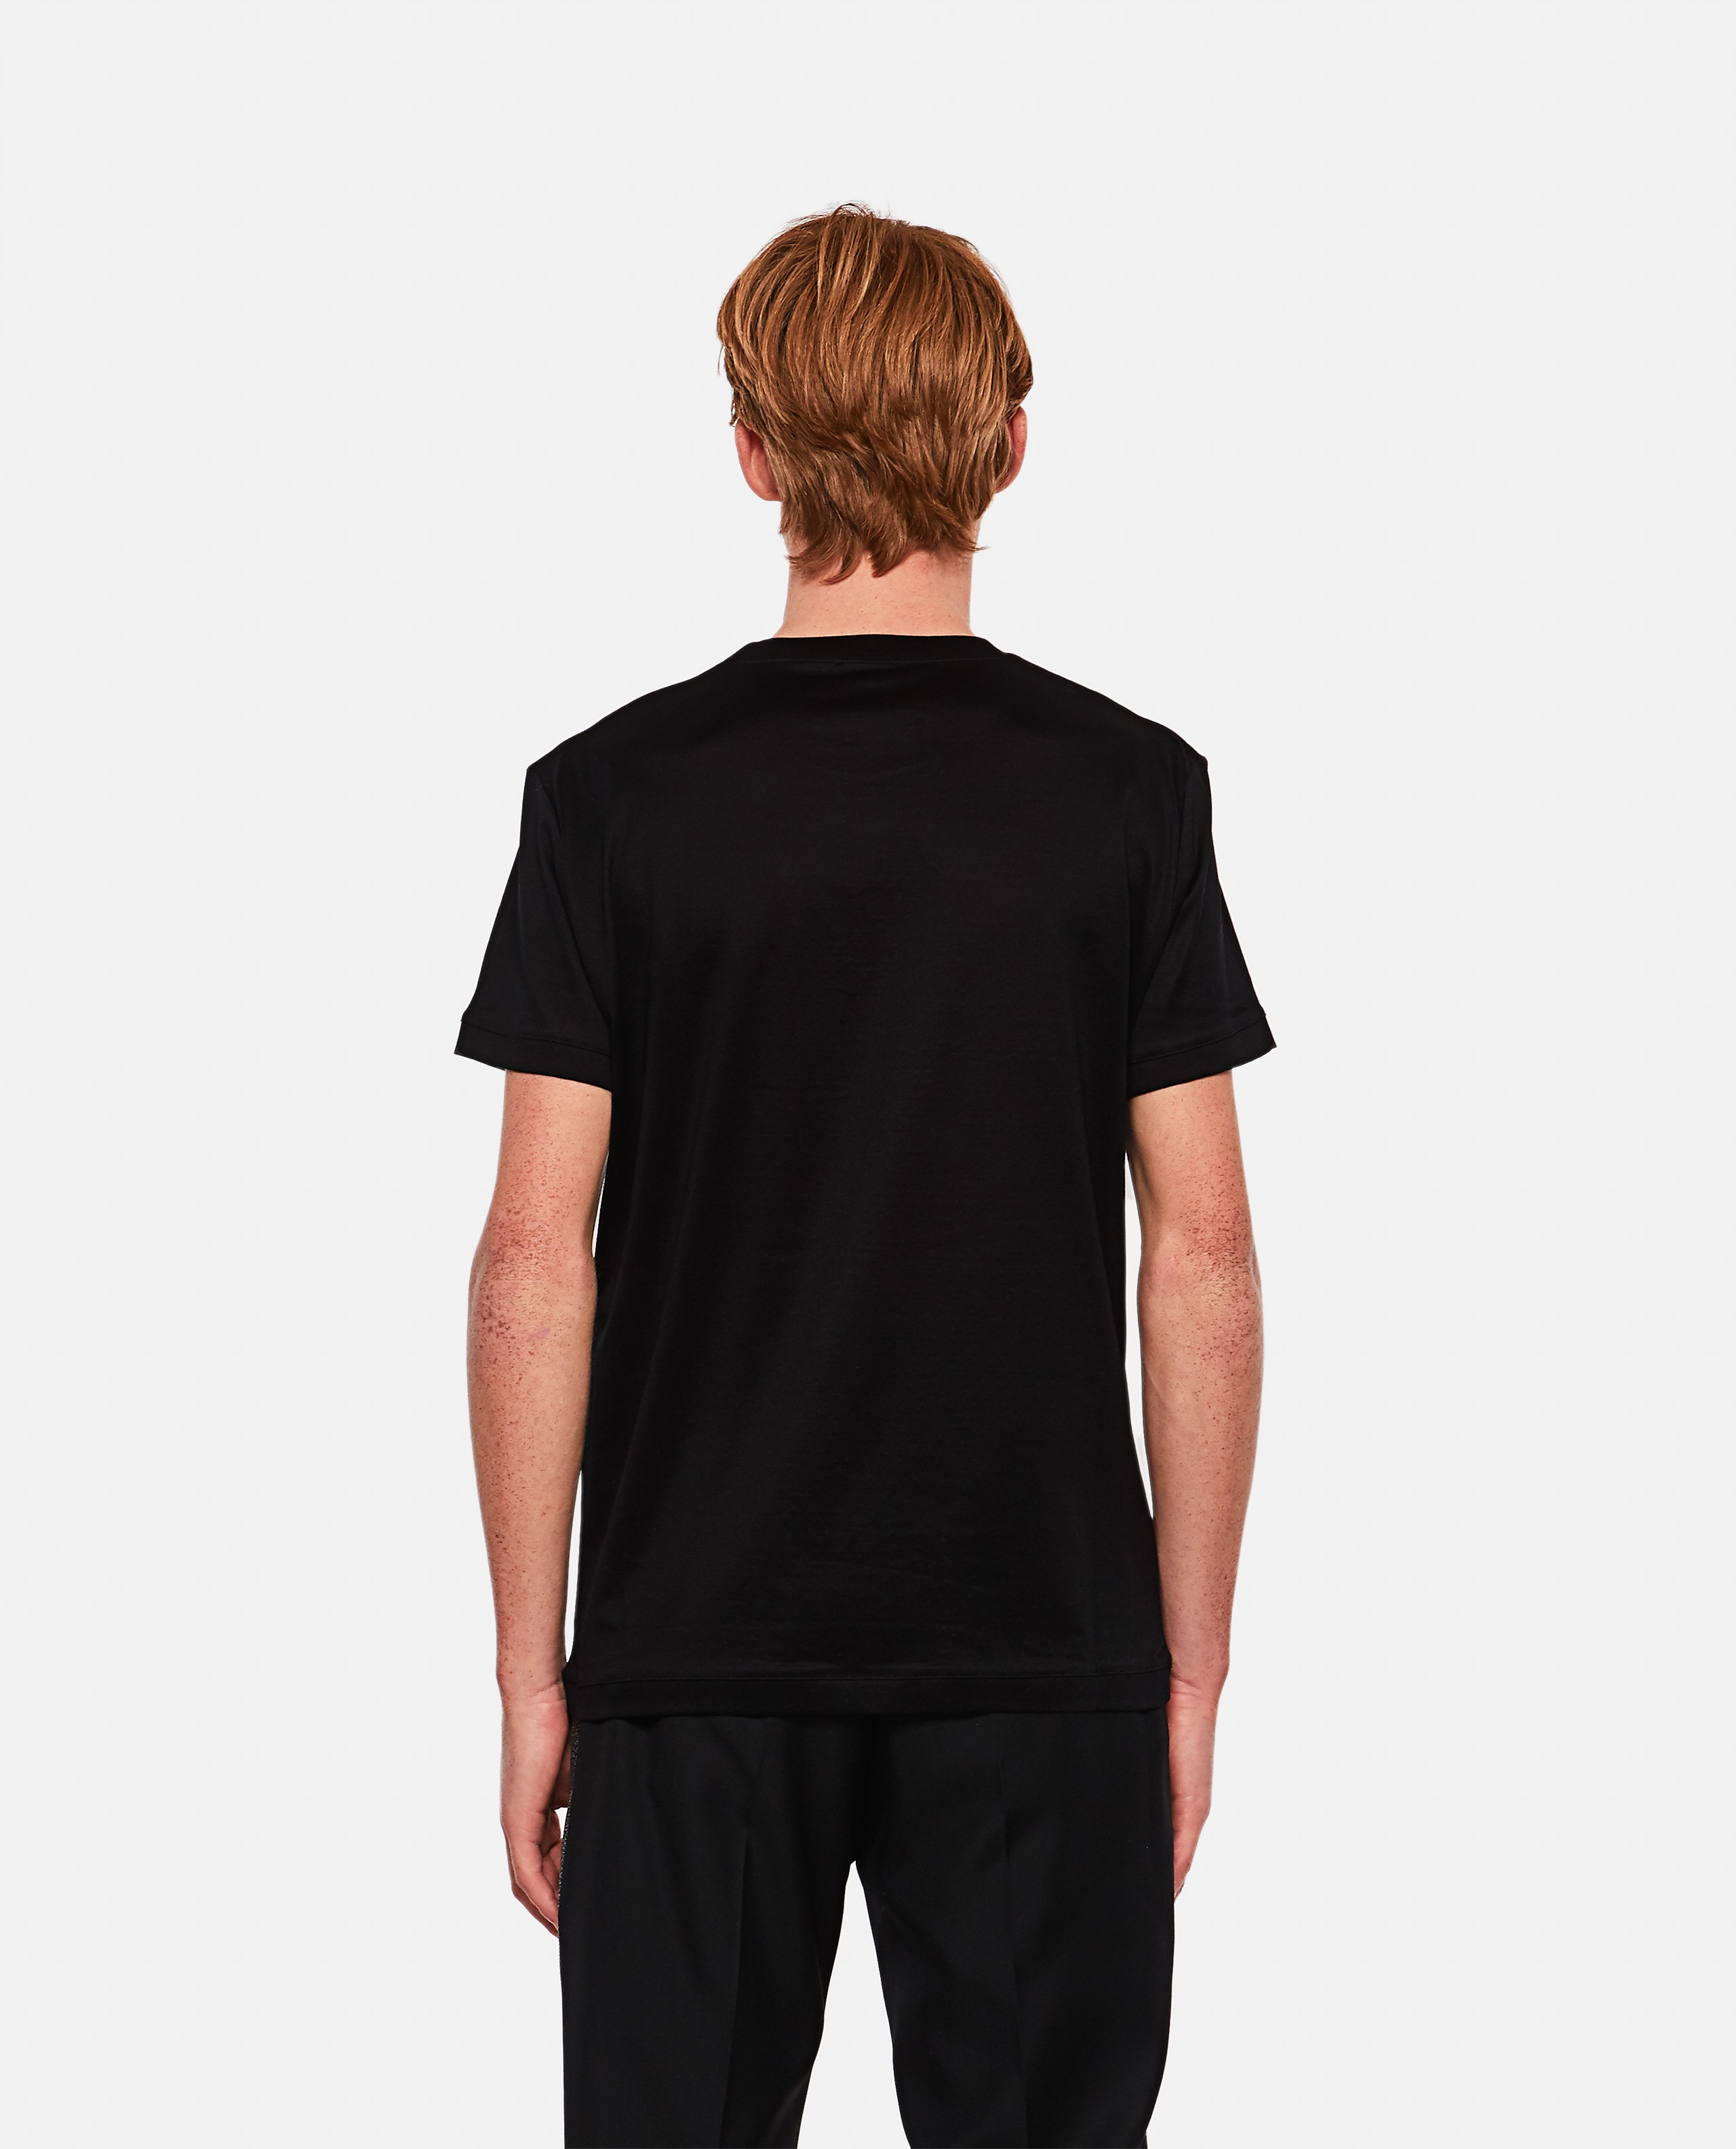 T-shirt with embroidered logo Men Alexander McQueen 000291060042850 3